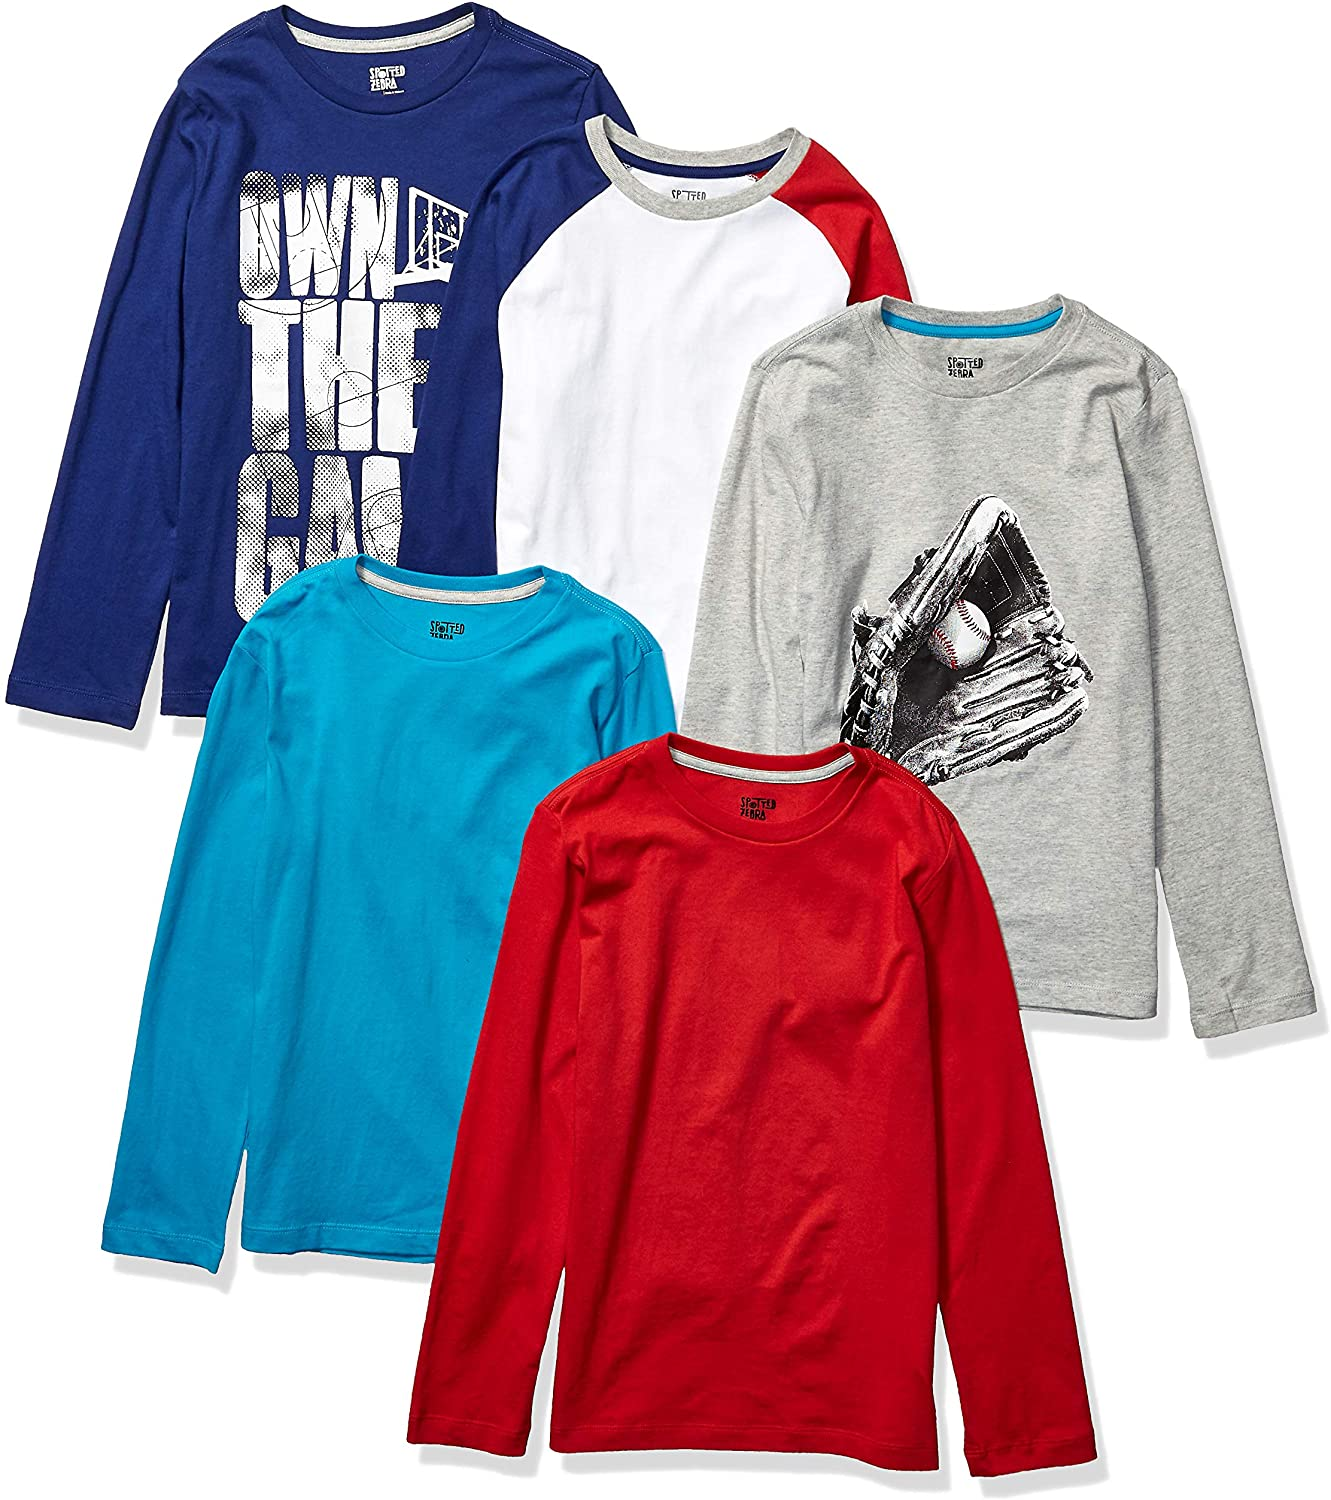 Brand Spotted Zebra Boys Toddler /& Kids 5-pack Long-sleeve T-shirts